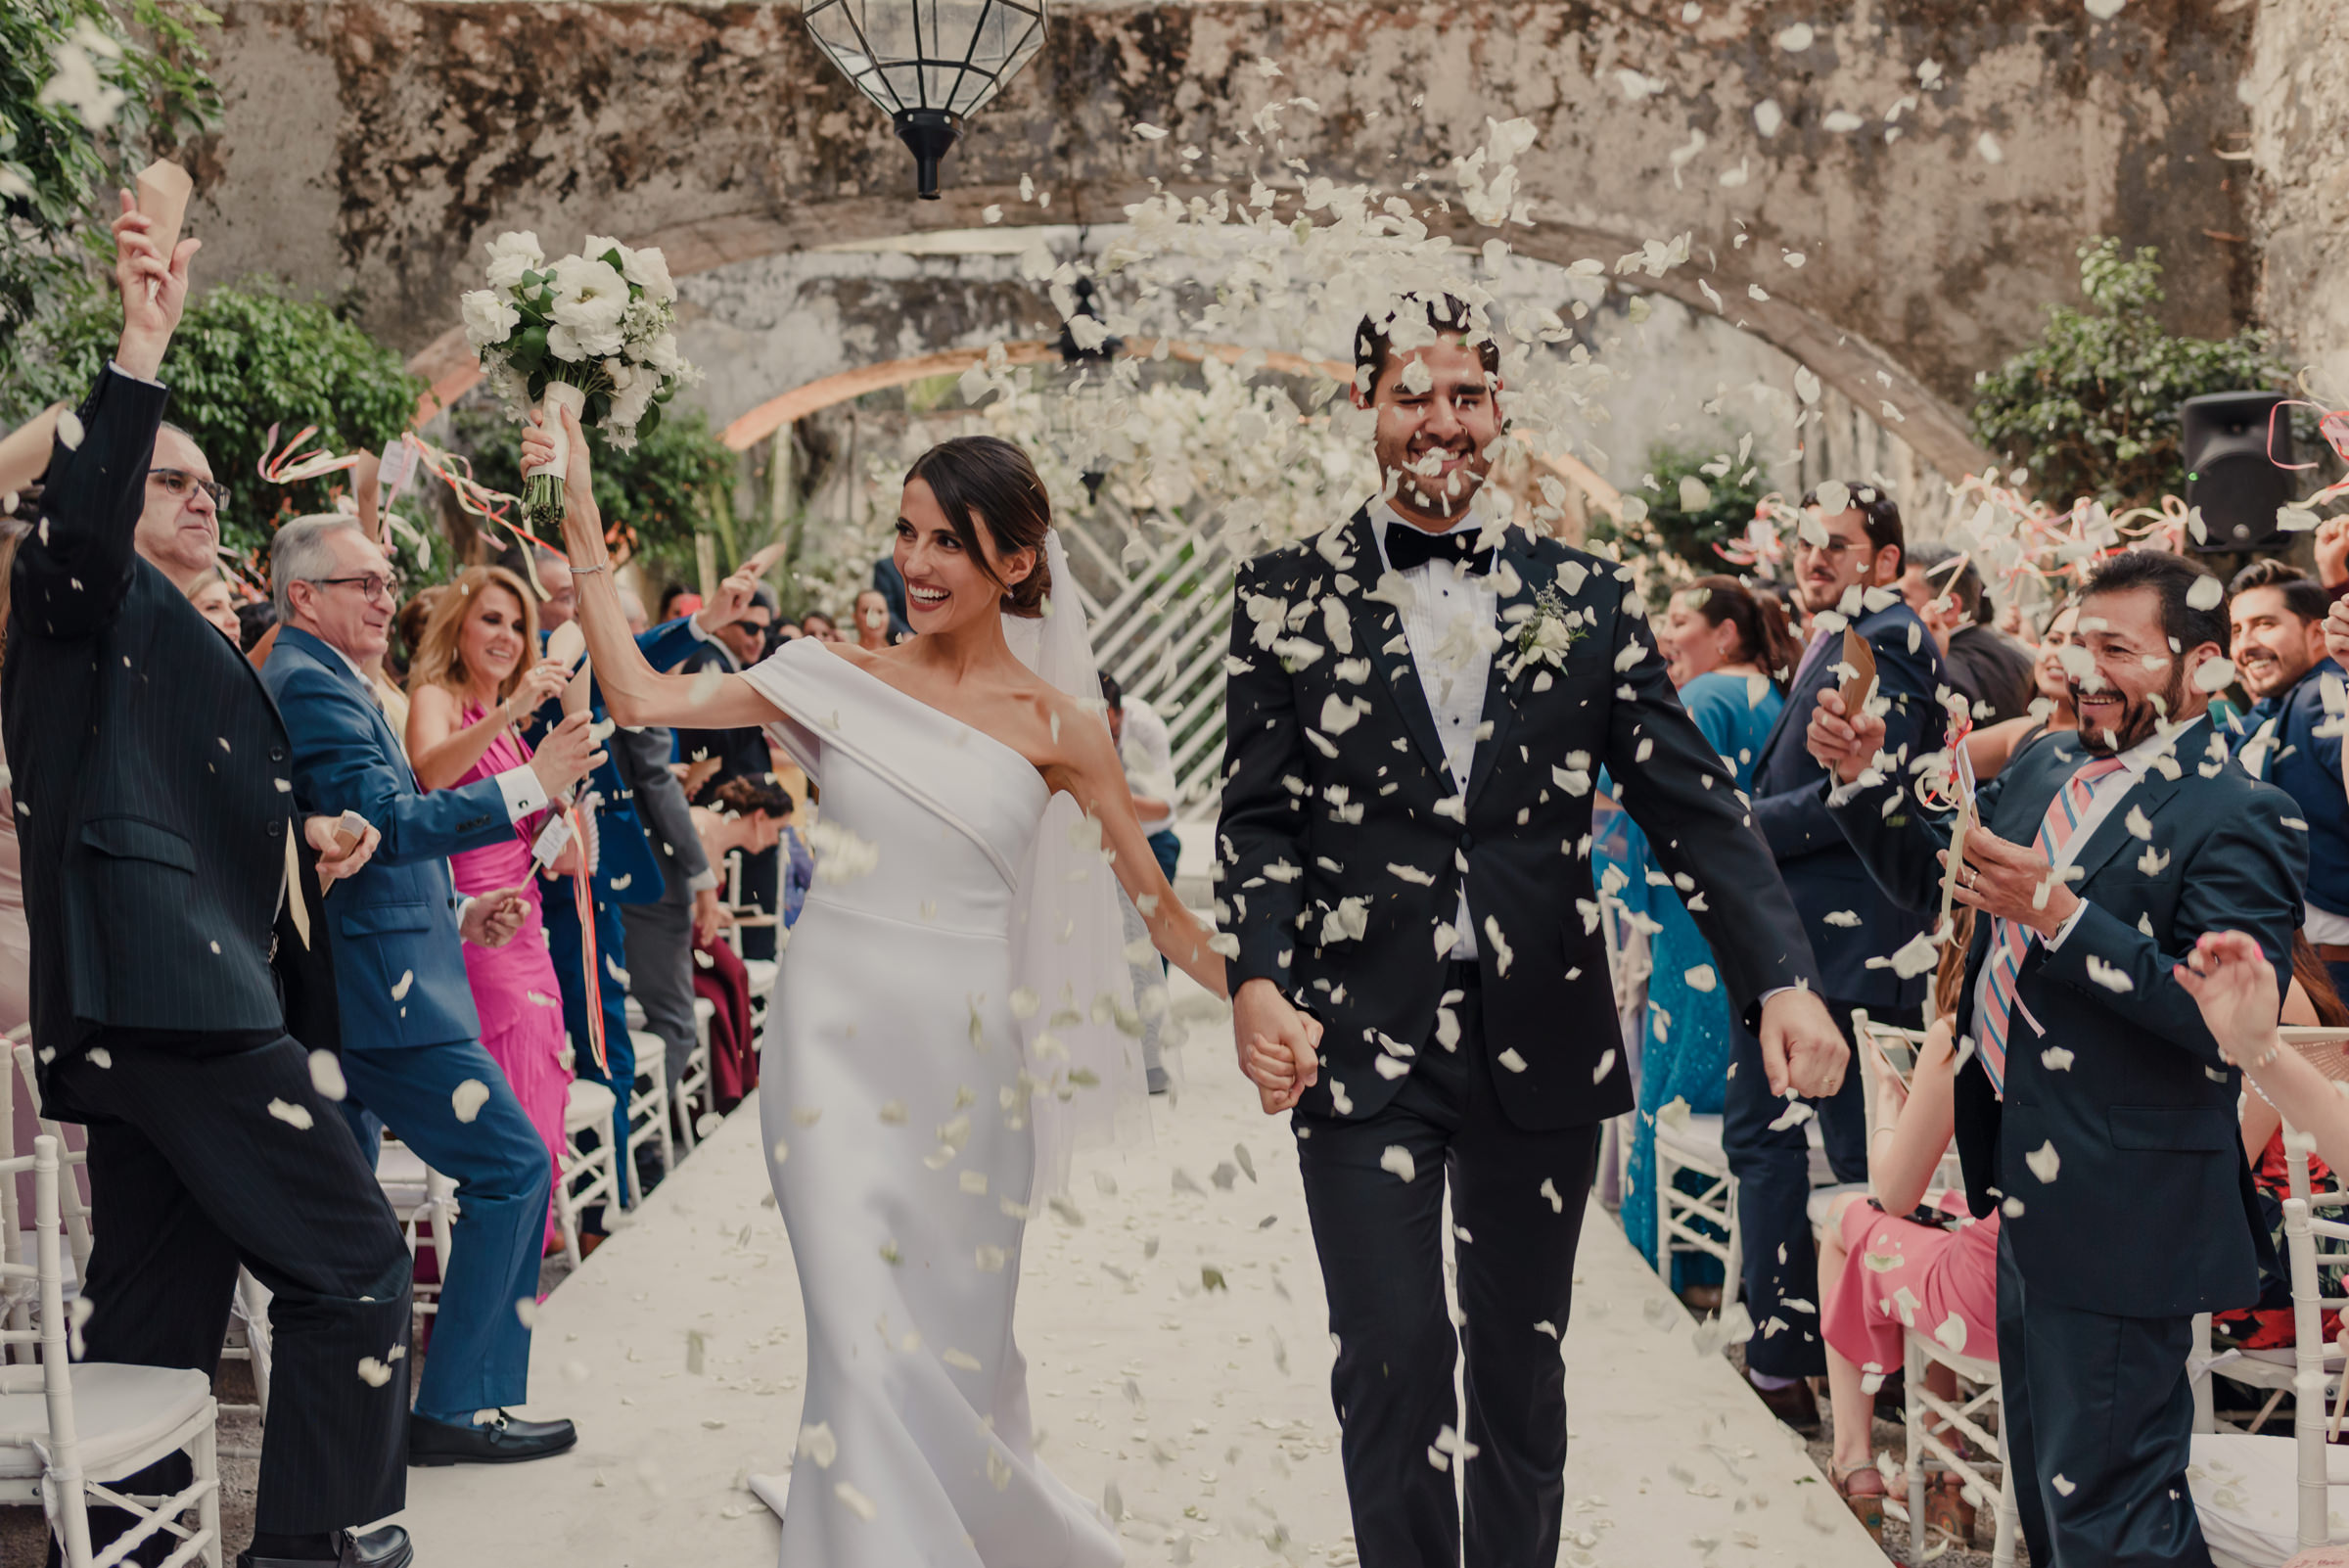 Just married couple leaving ceremony in shower of flowers - photo by El Marco Rojo